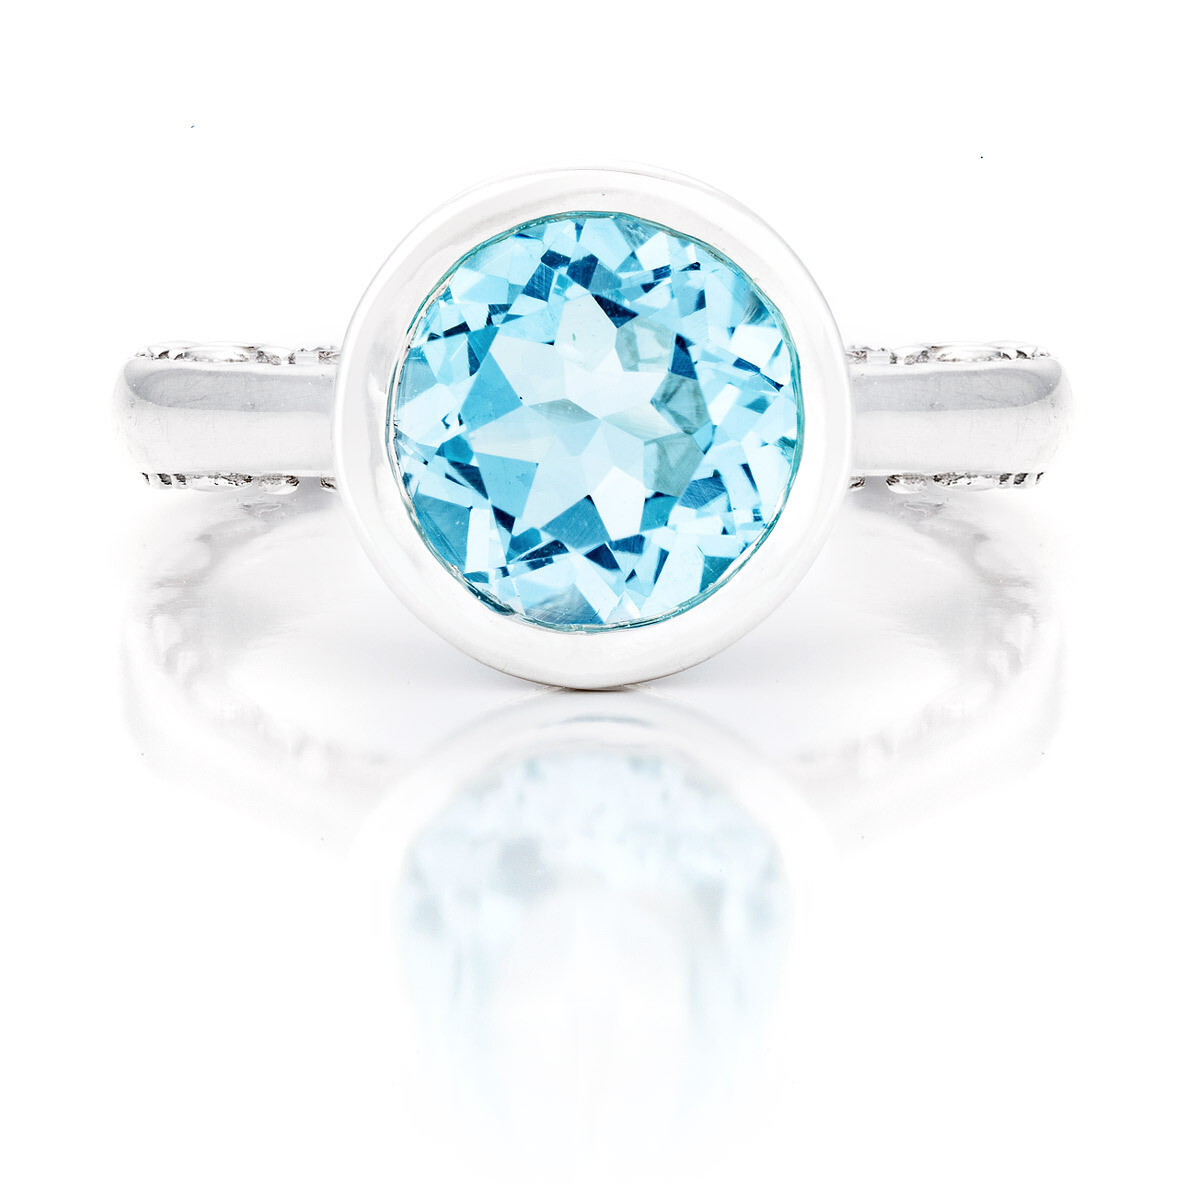 CC Tuileries©—Sliver with Blue Topaz